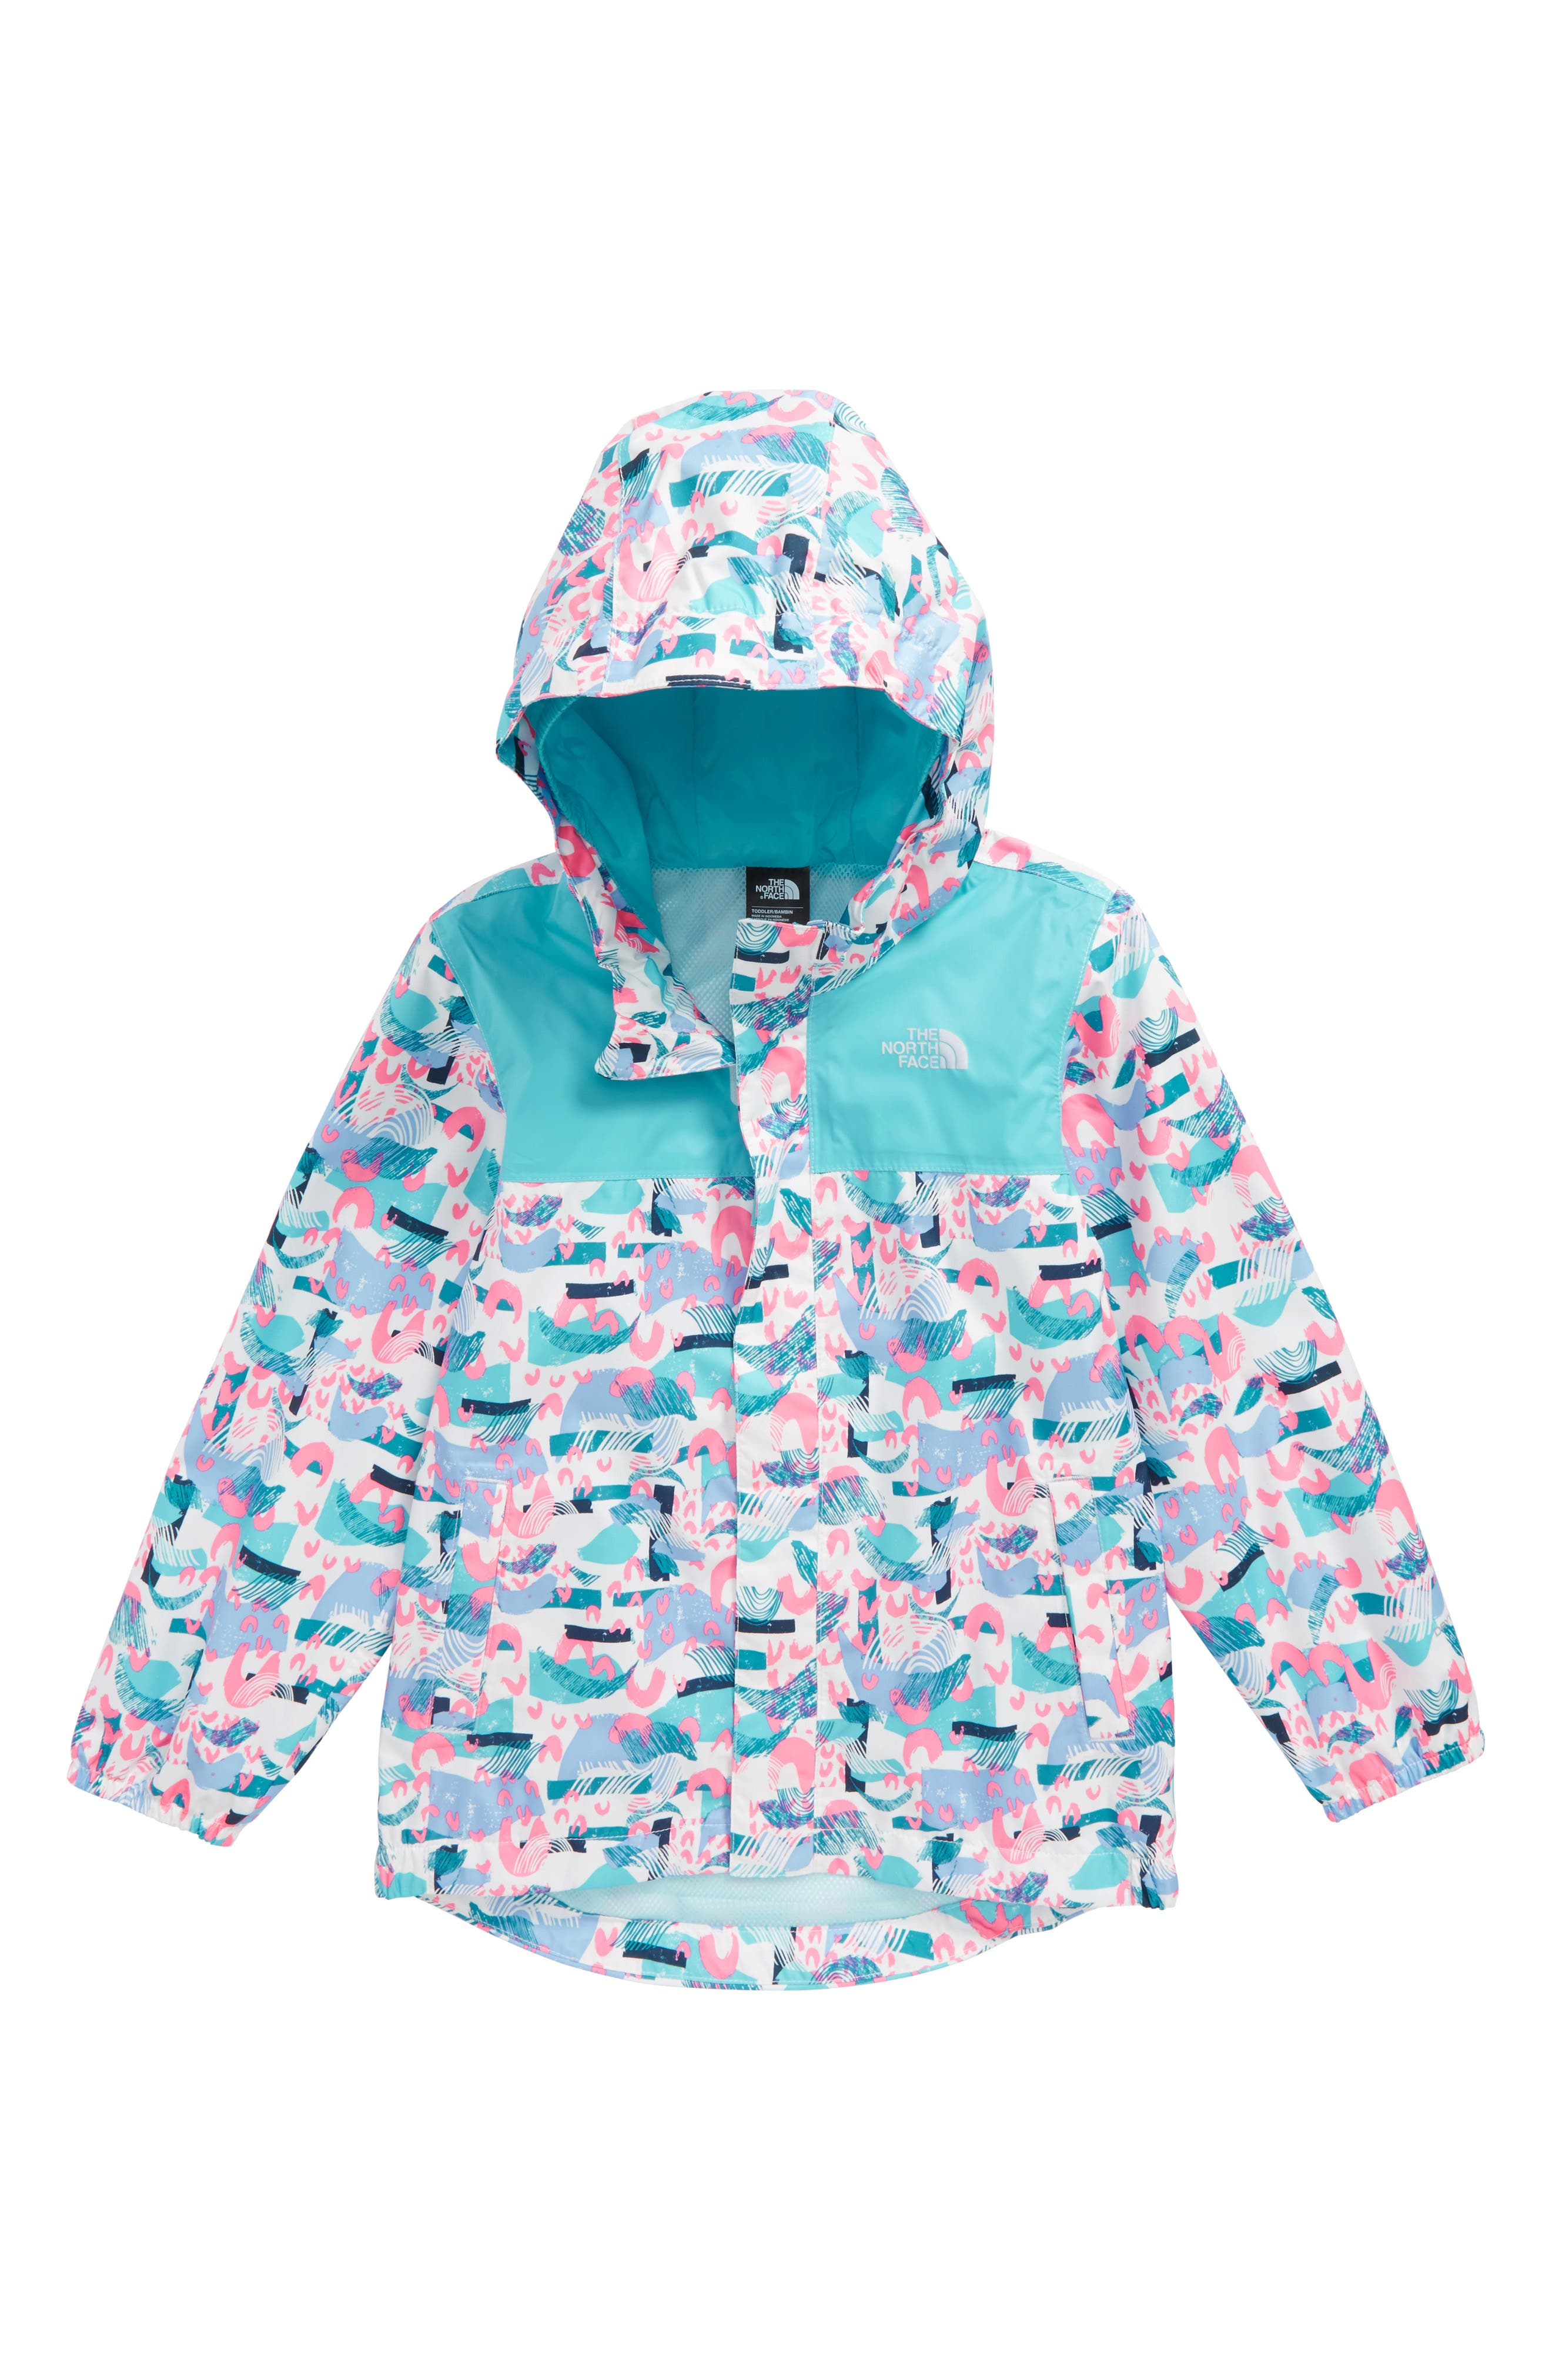 Tailout Hooded Rain Jacket,                         Main,                         color,